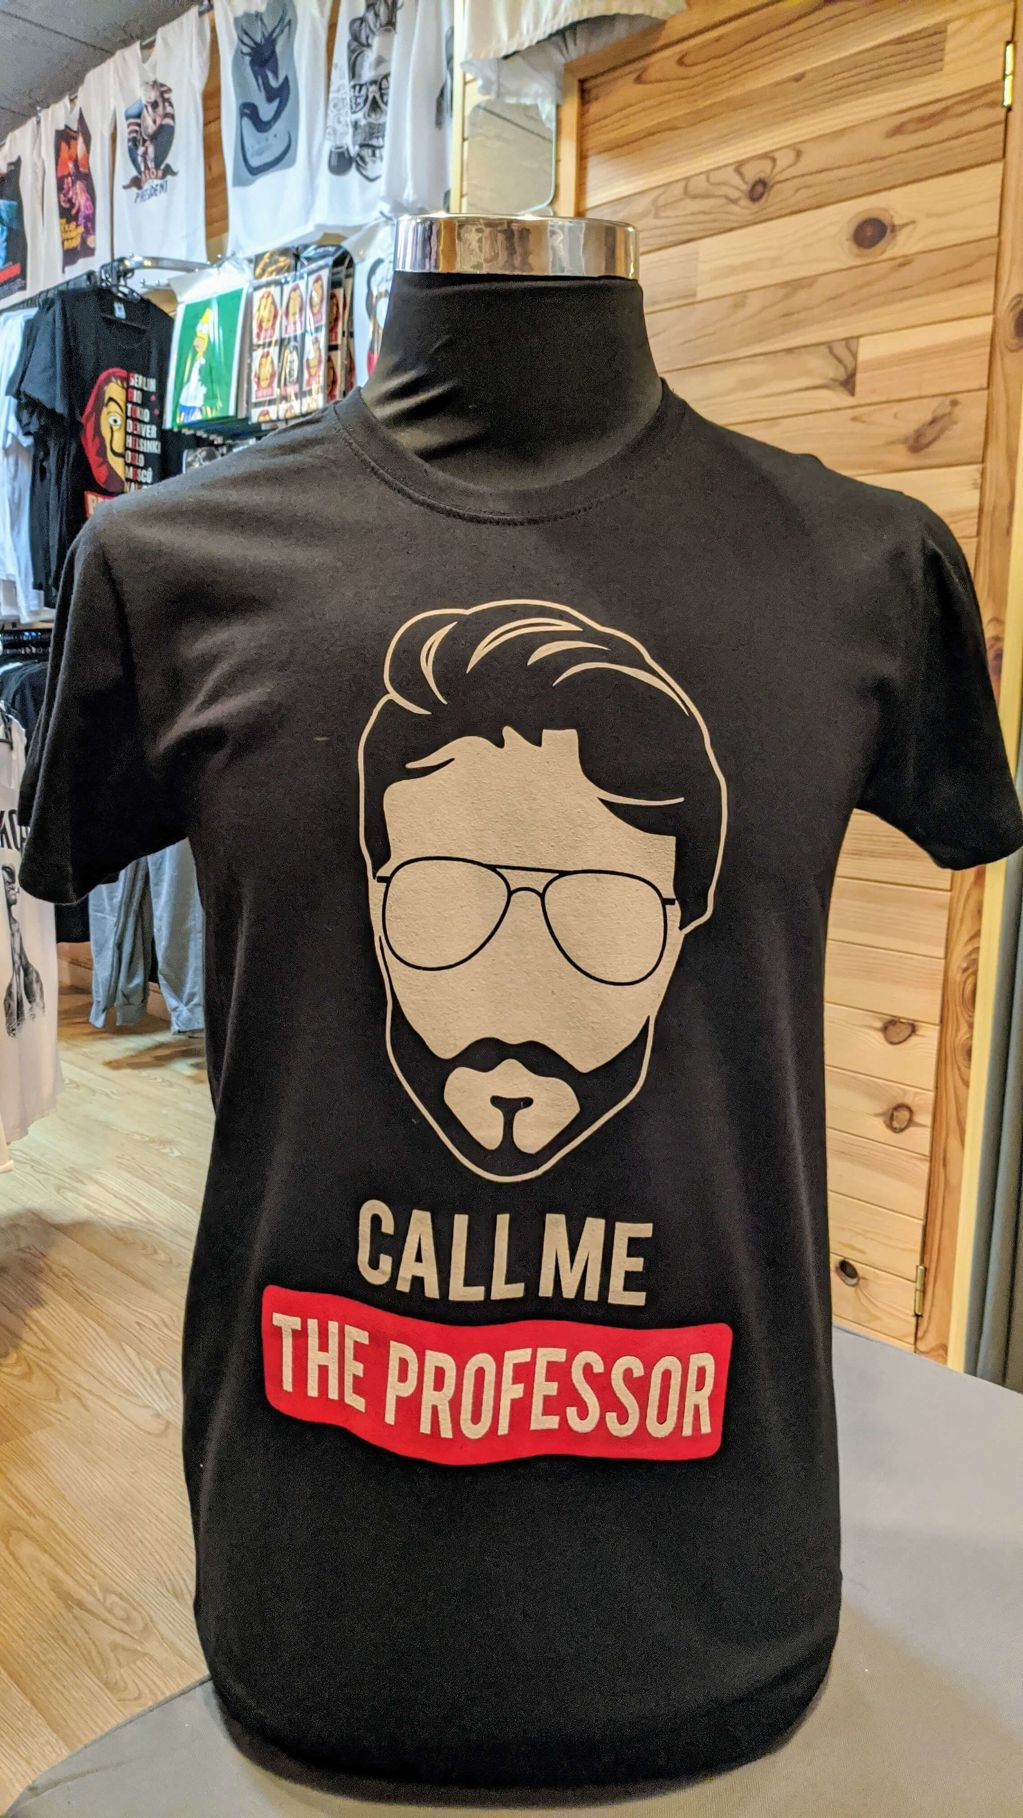 Call me The Professor - e39ac-camiseta-casa-de-papel.jpg